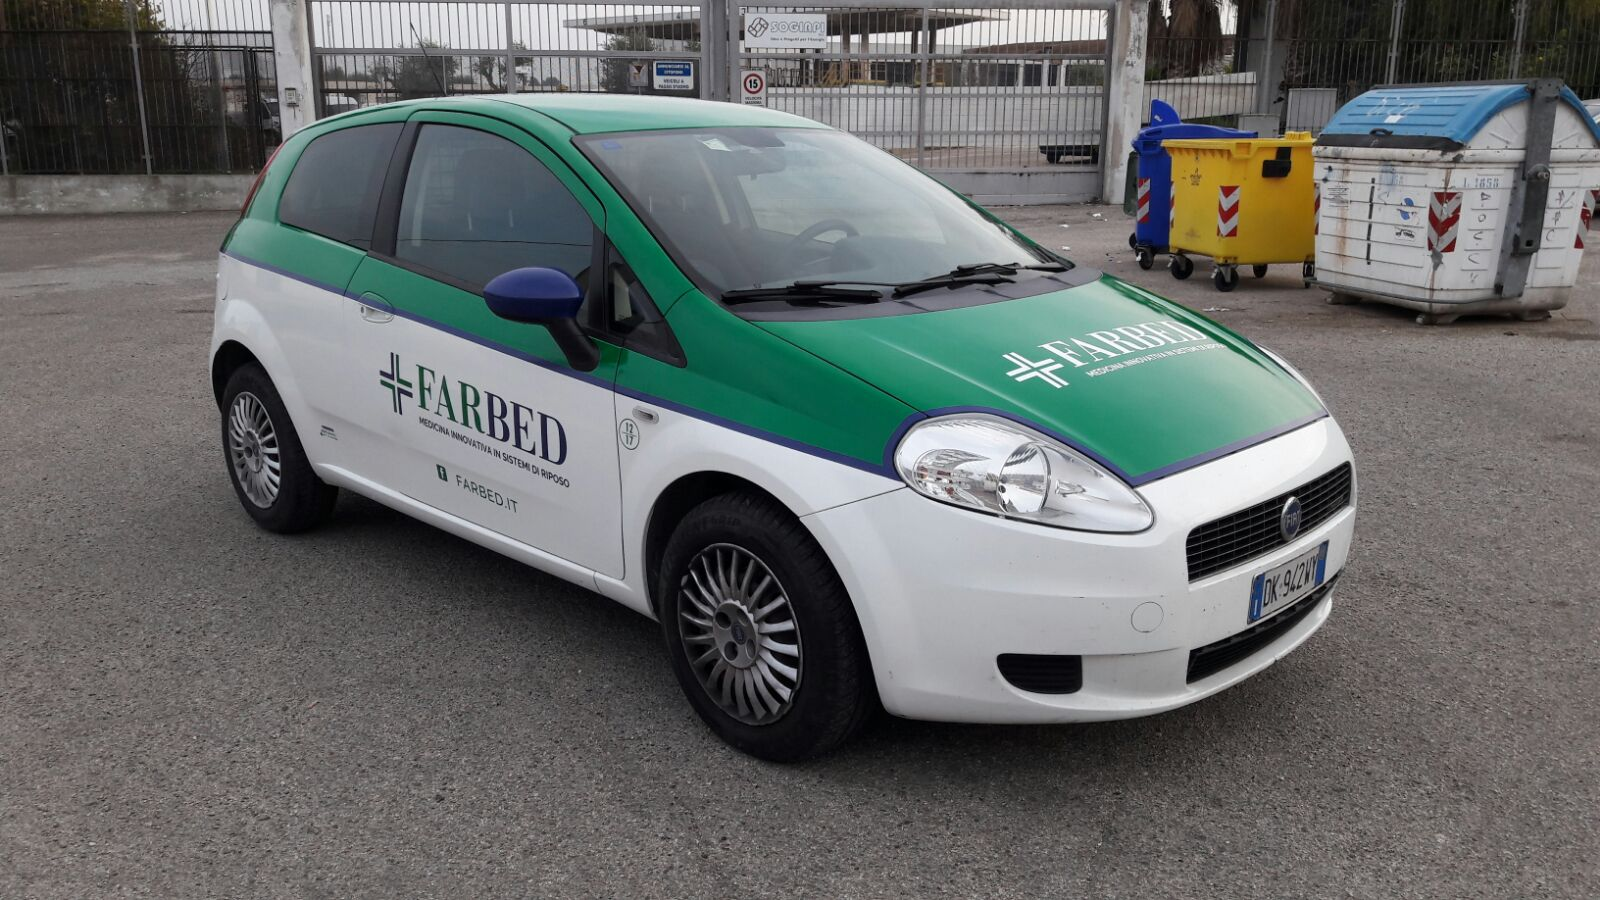 FARBED